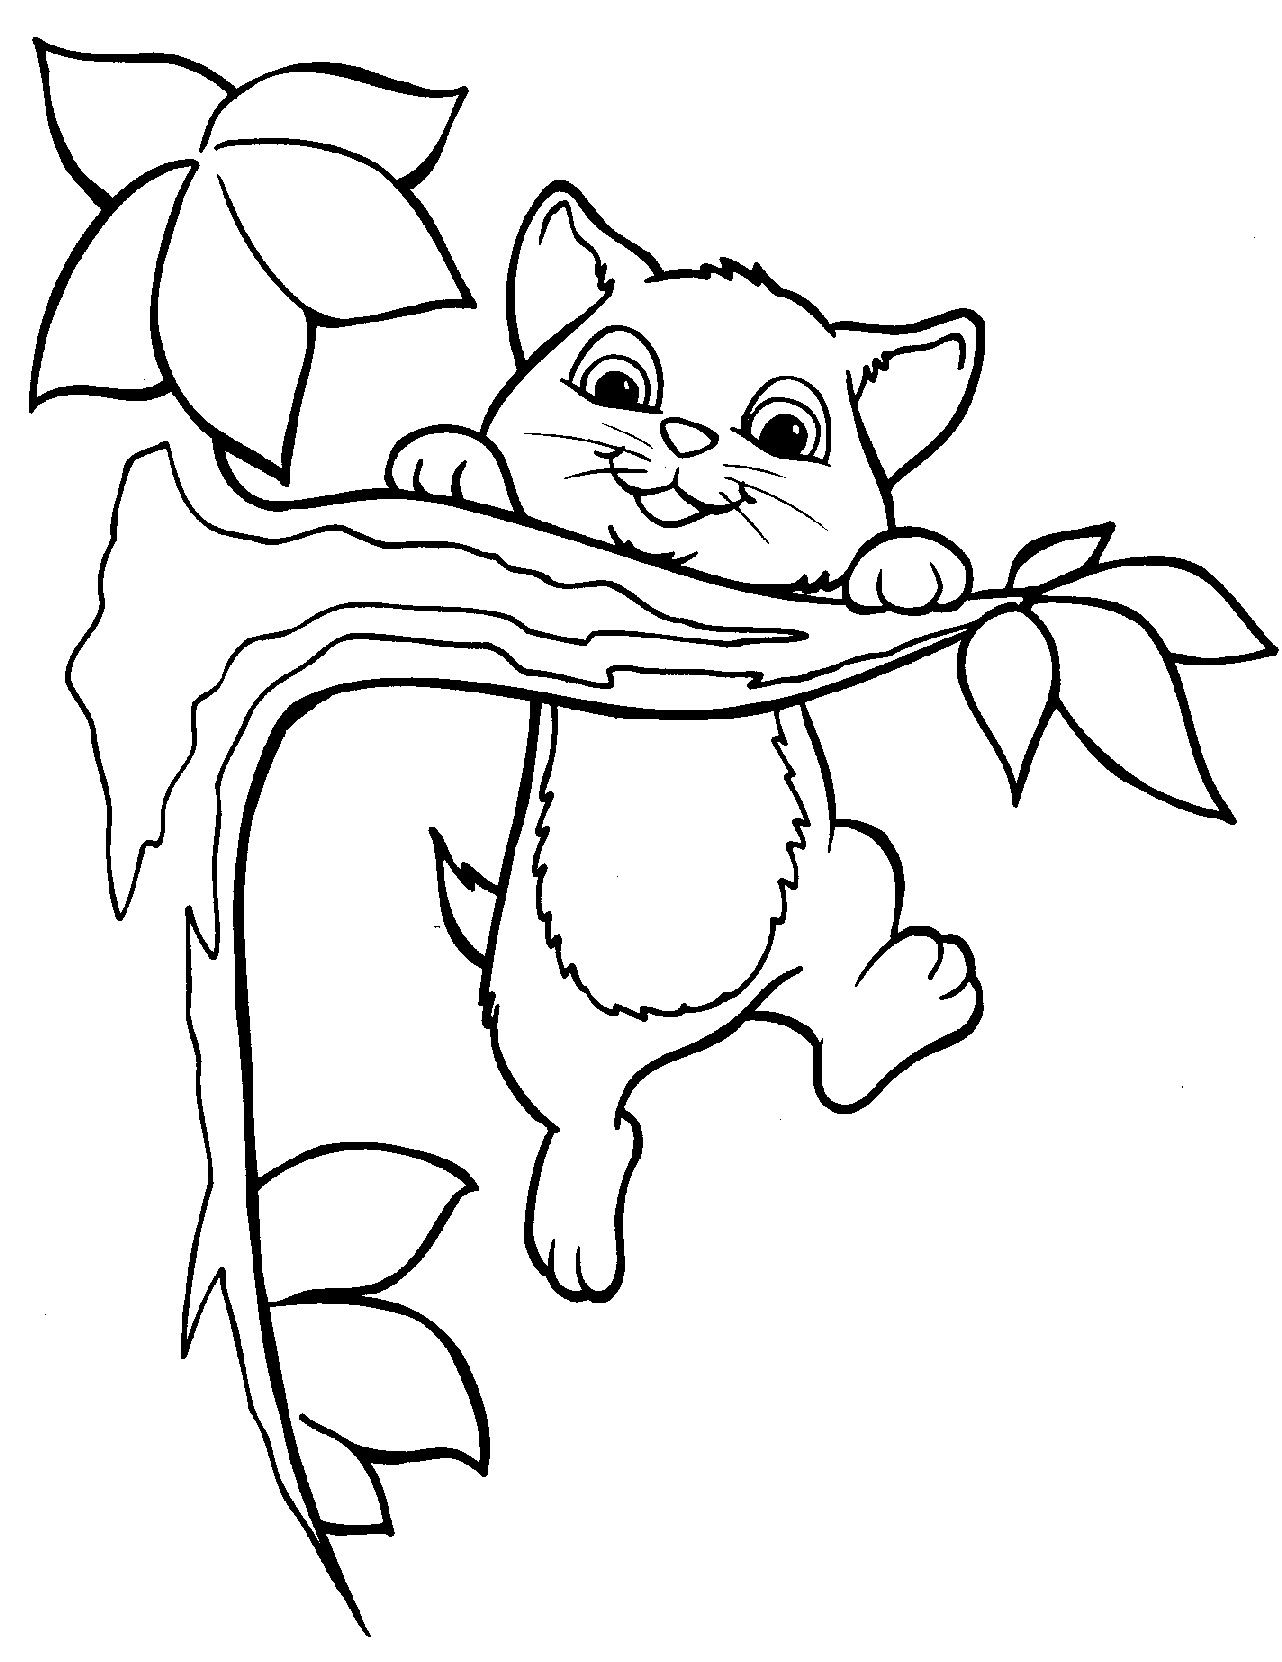 Kitten In A Tree Coloring Page For Teens And Adults Disegni Da